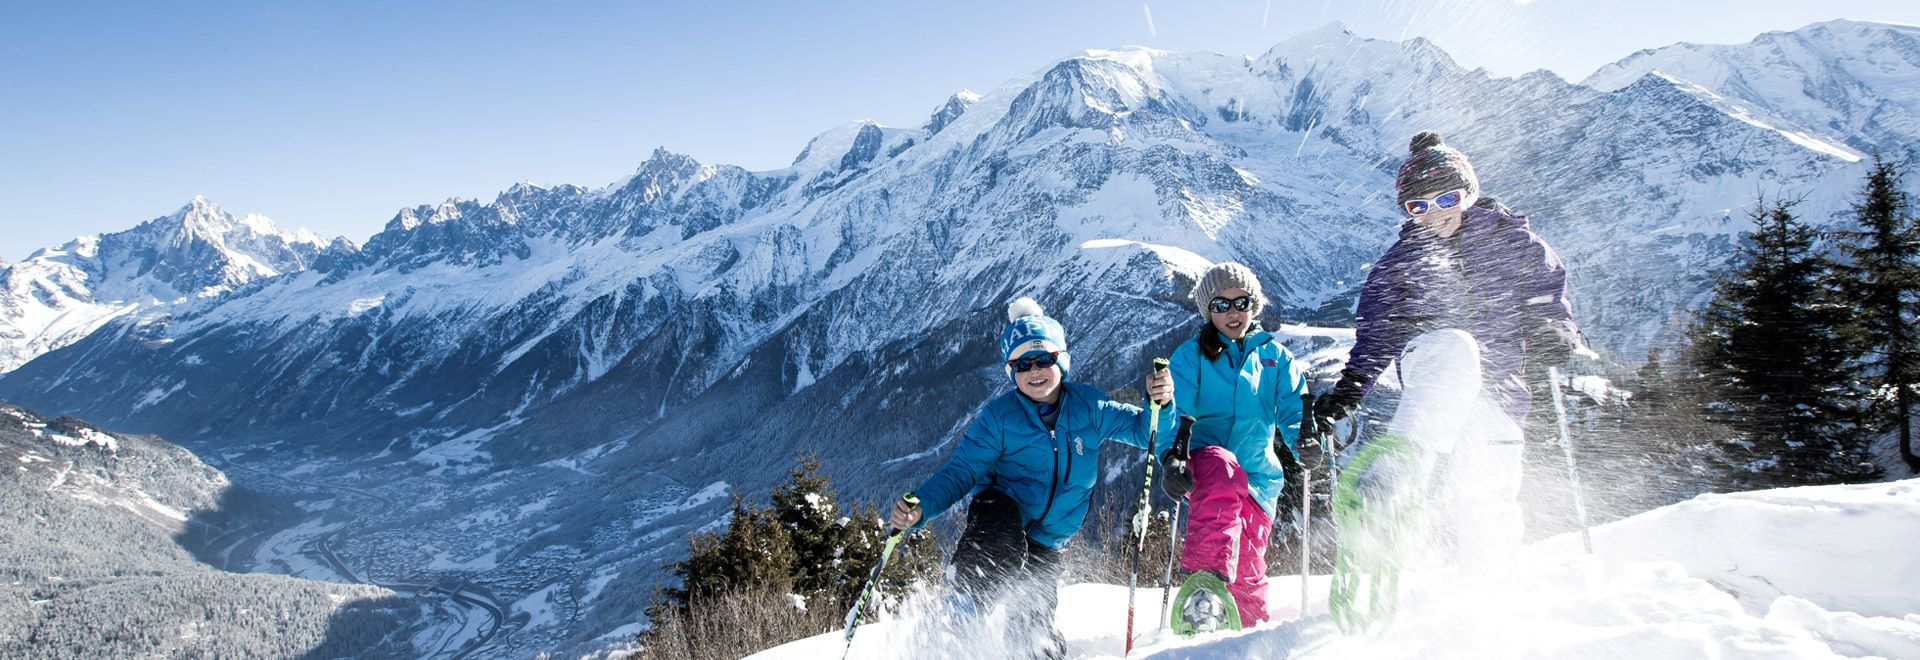 Location Ski Intersport Les Houches